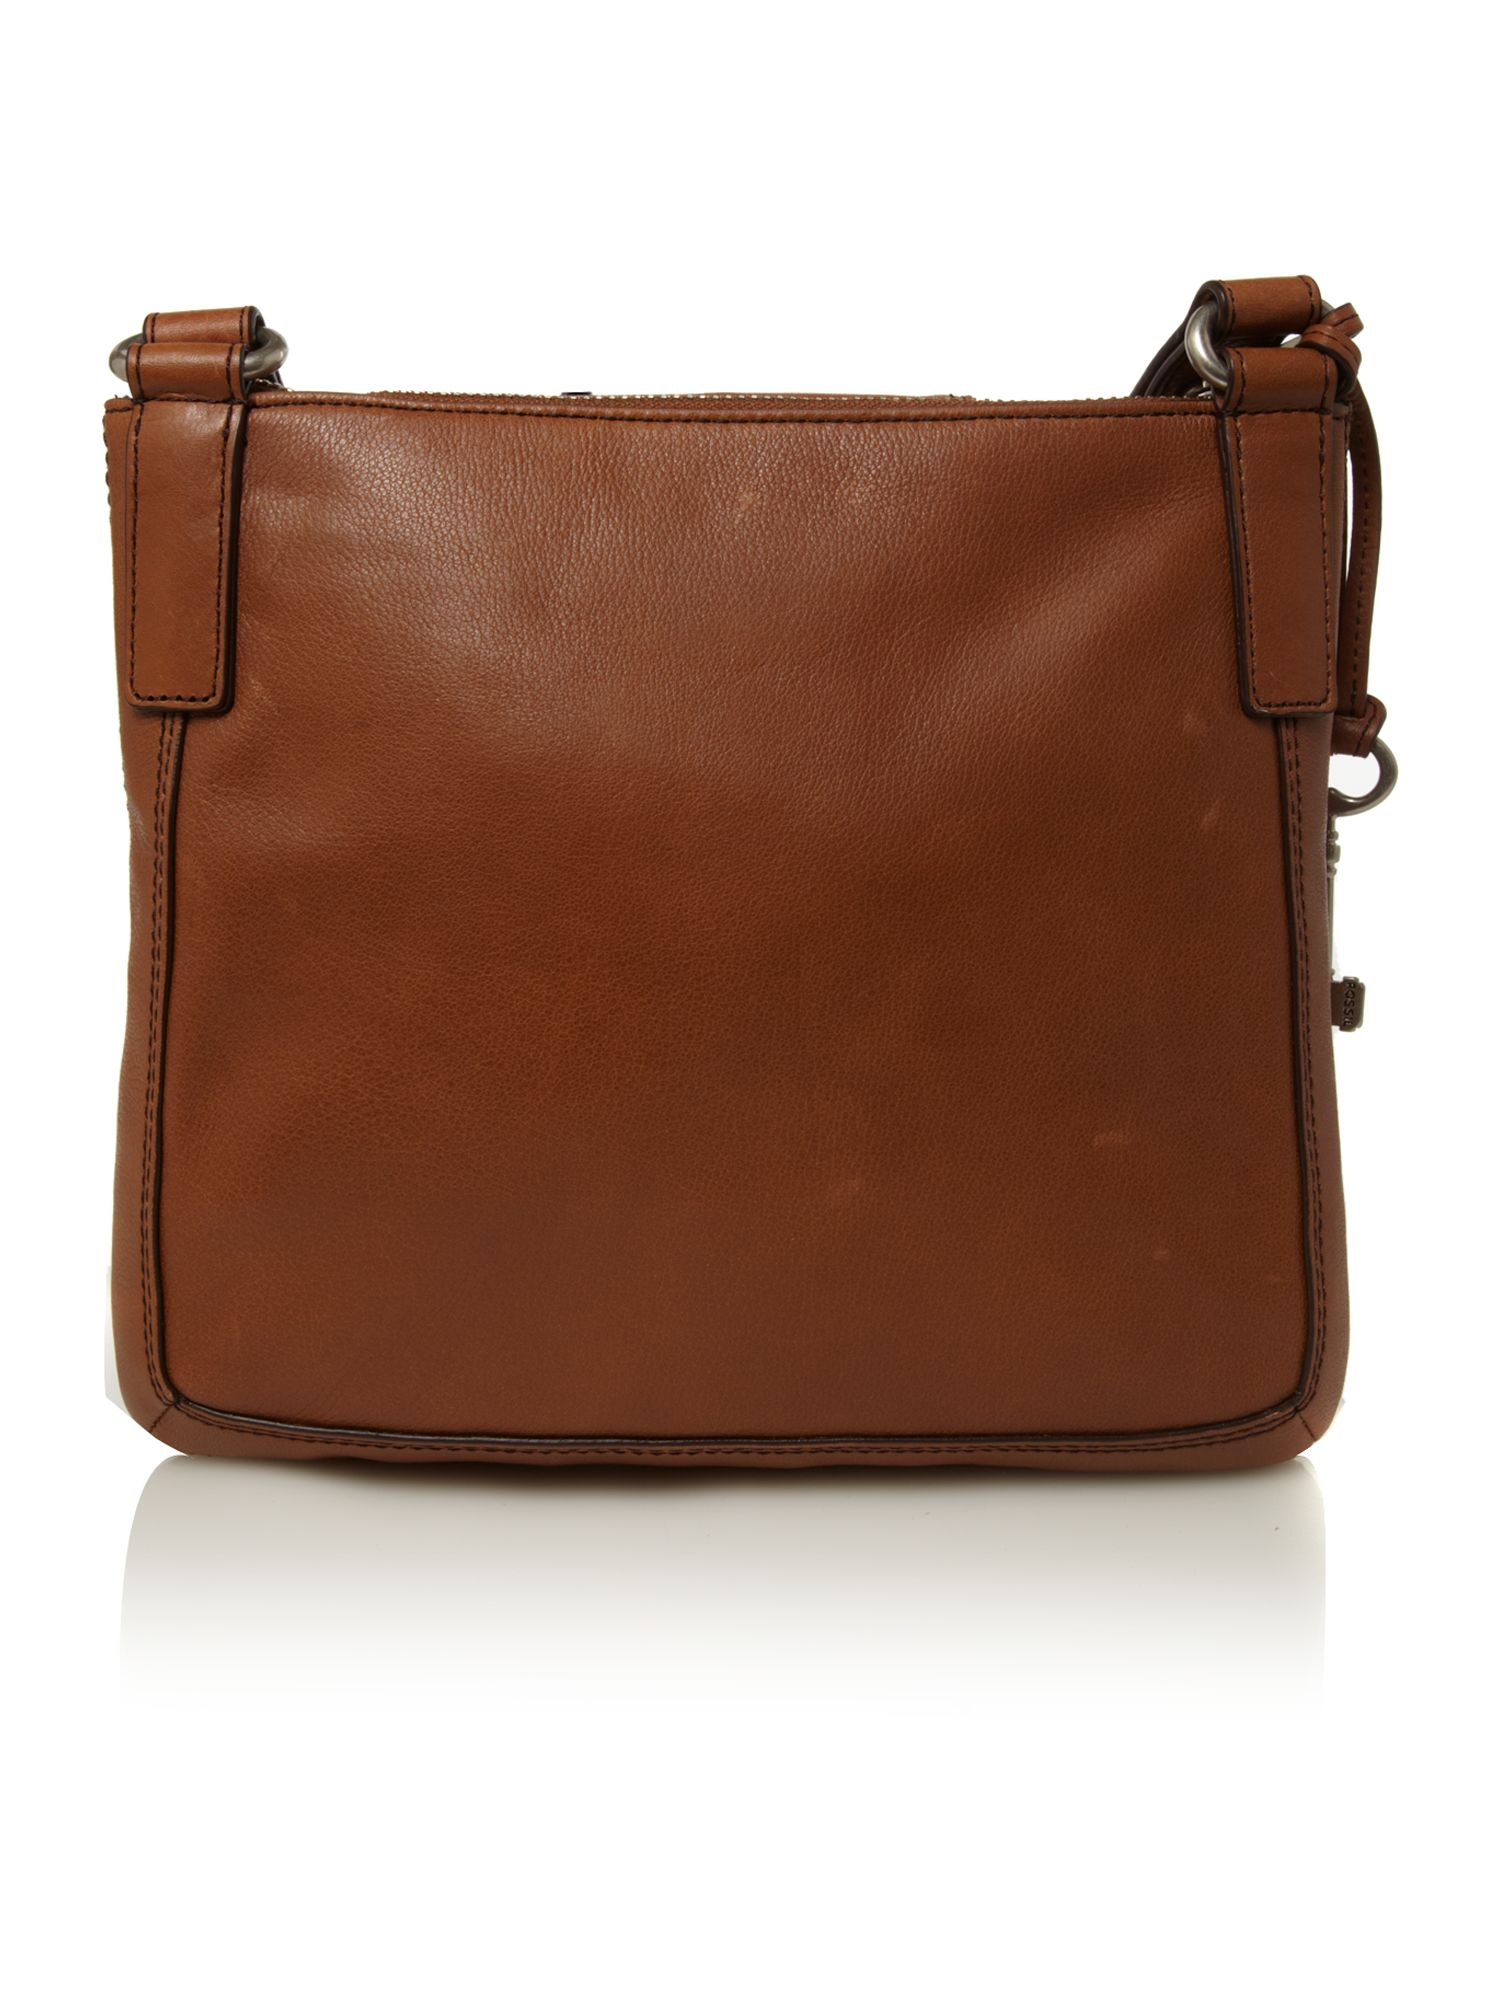 Fossil Large Cross Body Bag in Brown